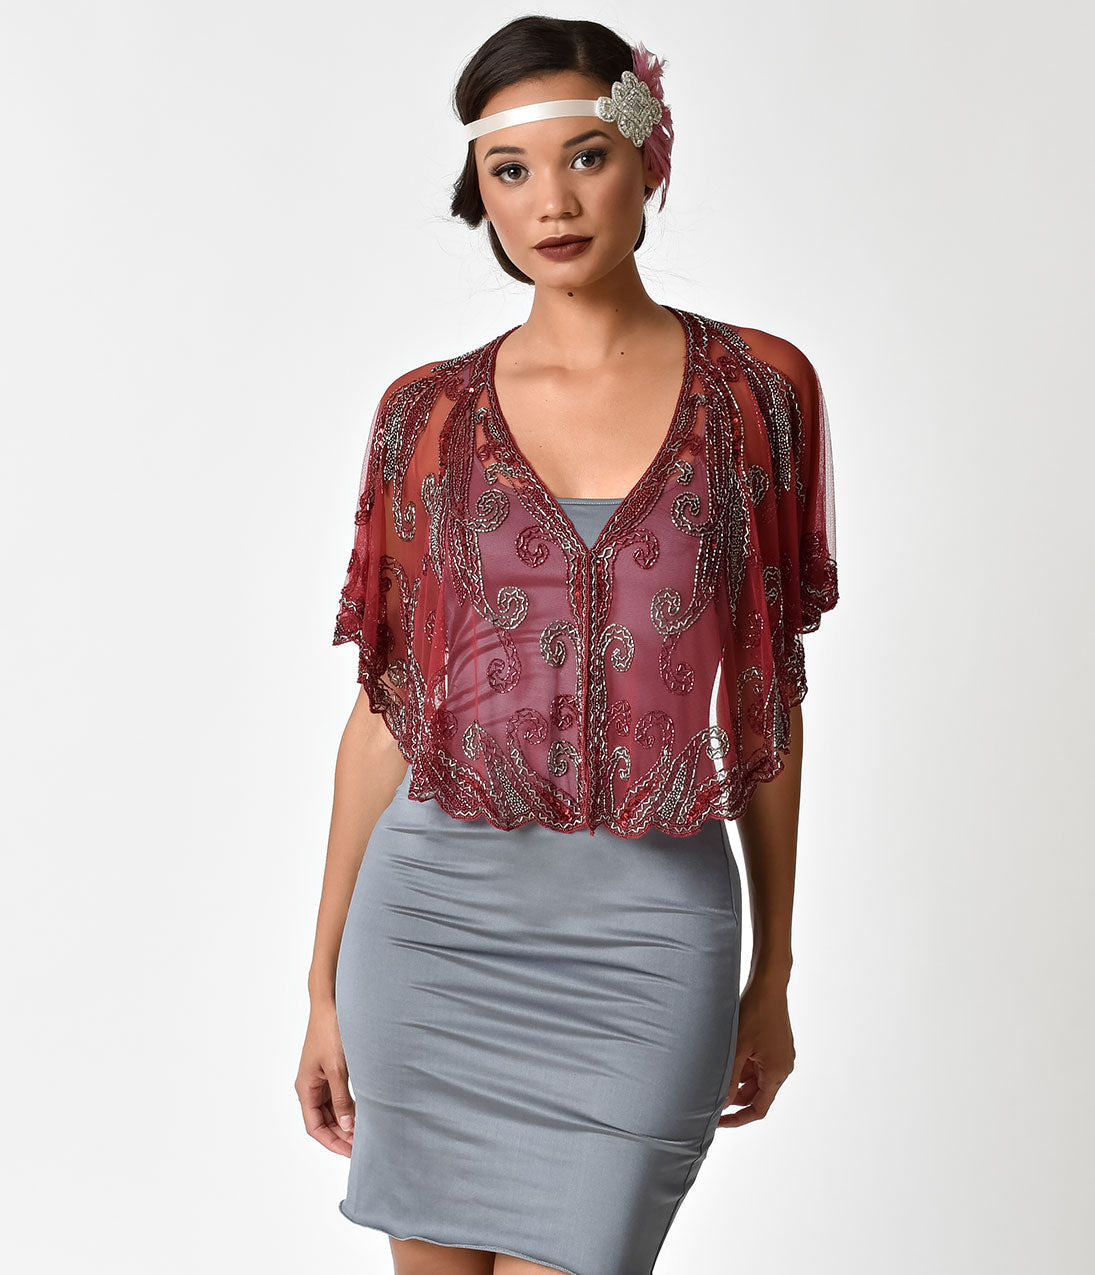 1920s Style Shawls, Wraps, Scarves 1920s Style Burgundy  Silver Beaded Sheer Mesh Capelet $46.00 AT vintagedancer.com